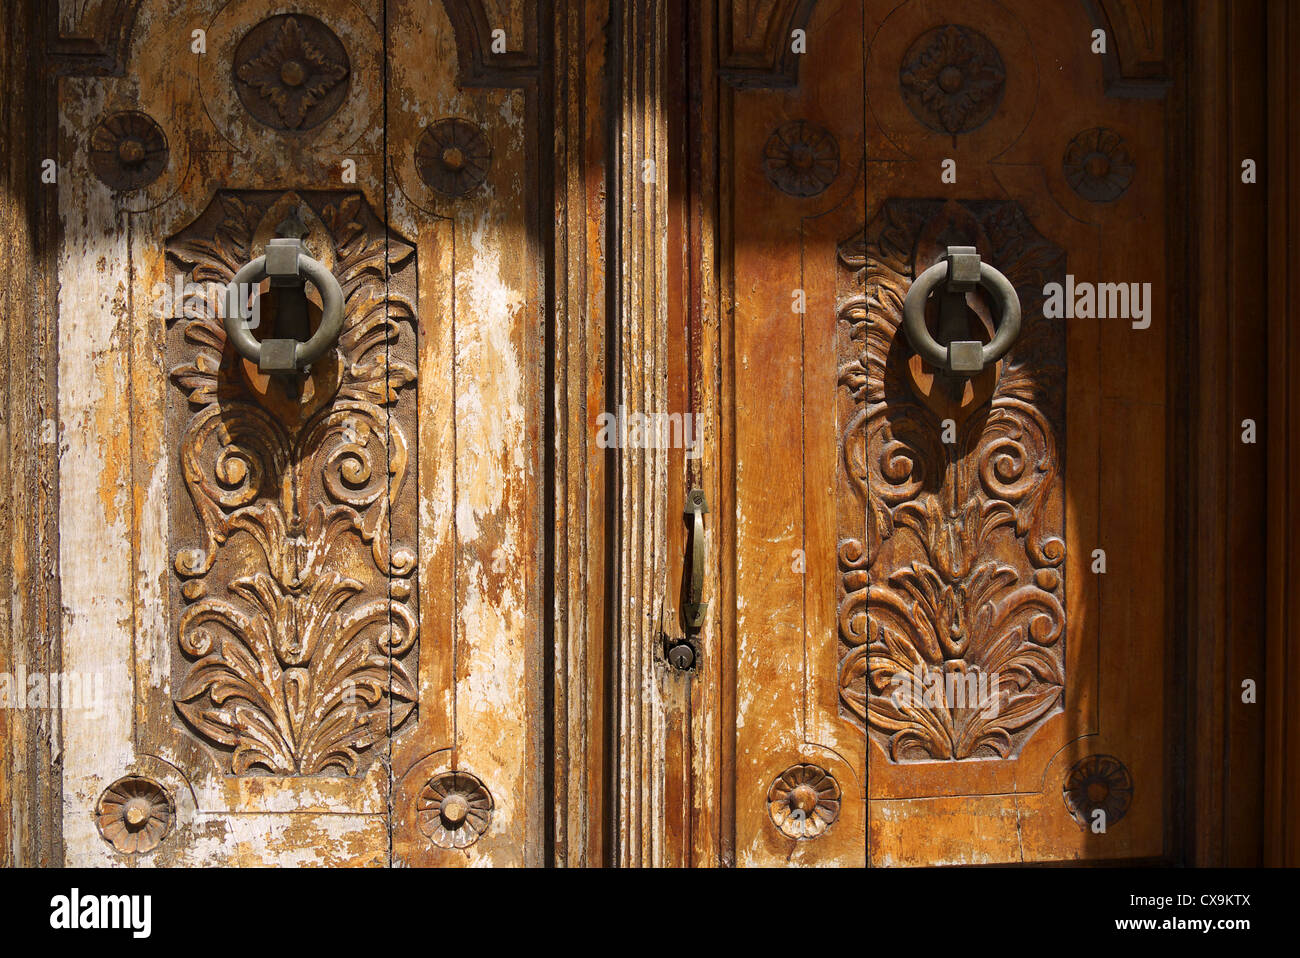 Wooden Carved Doors High Resolution Stock Photography And Images Alamy